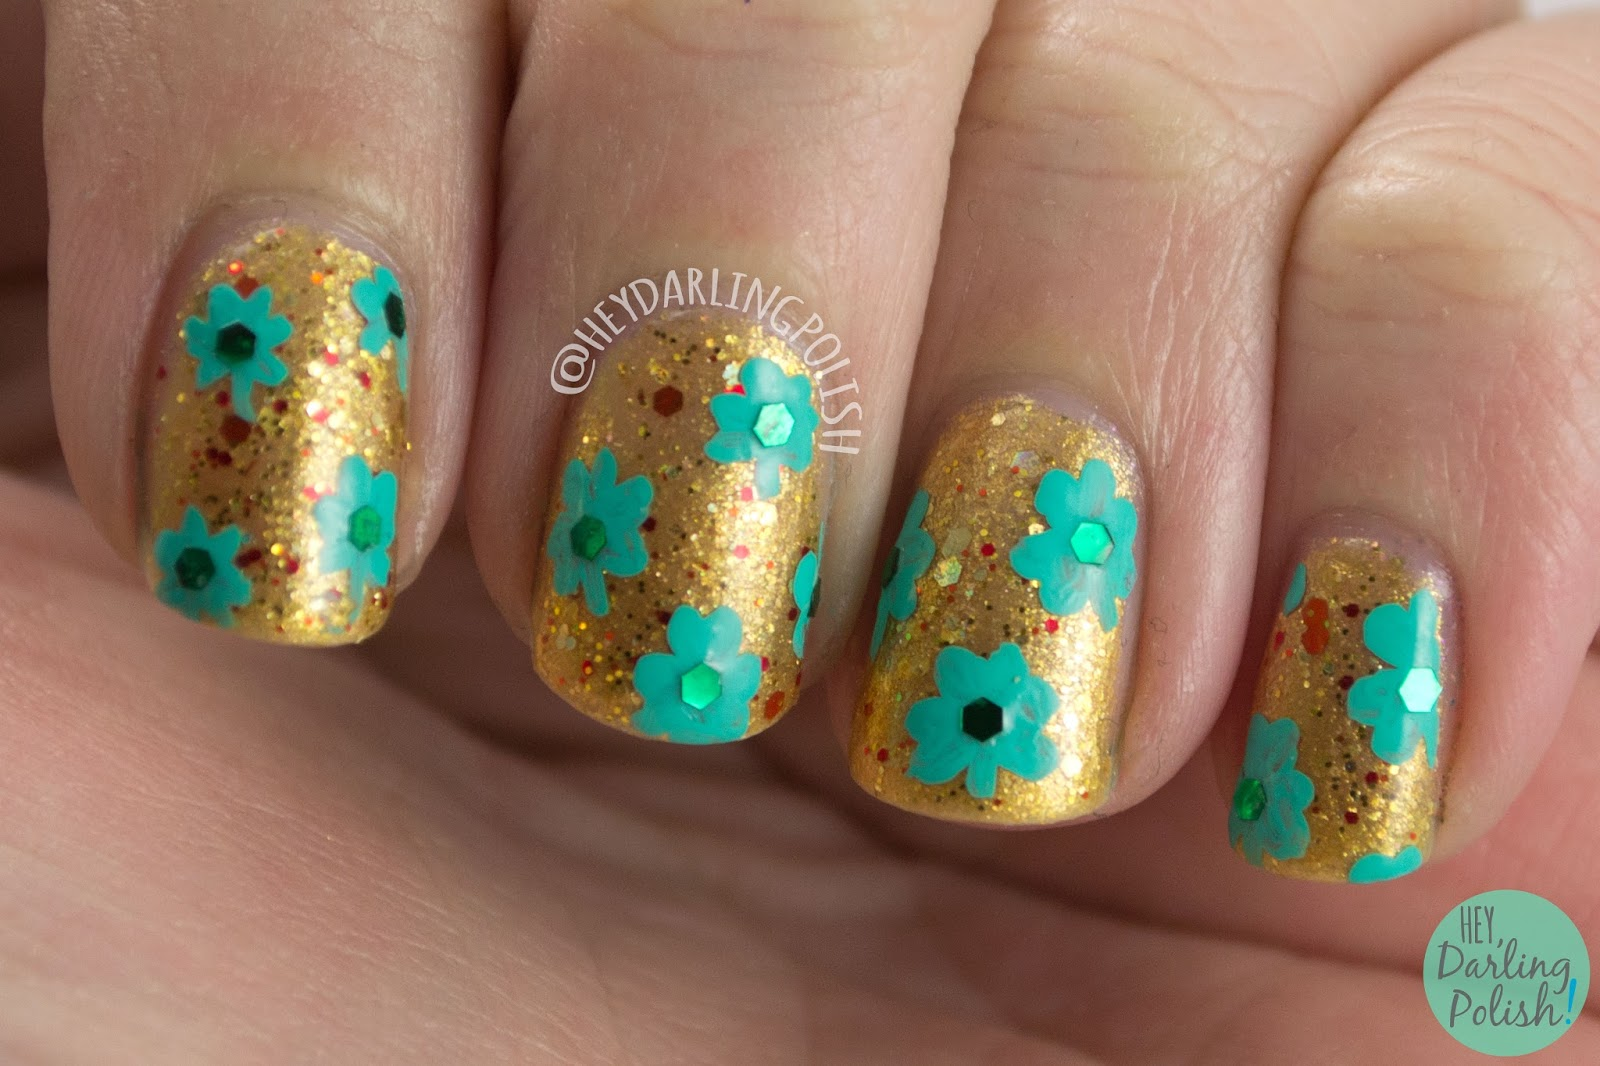 nails, nail art, nail polish, hey darling polish, gold, green, shamrocks, glitter, st. patrick's day, nail linkup